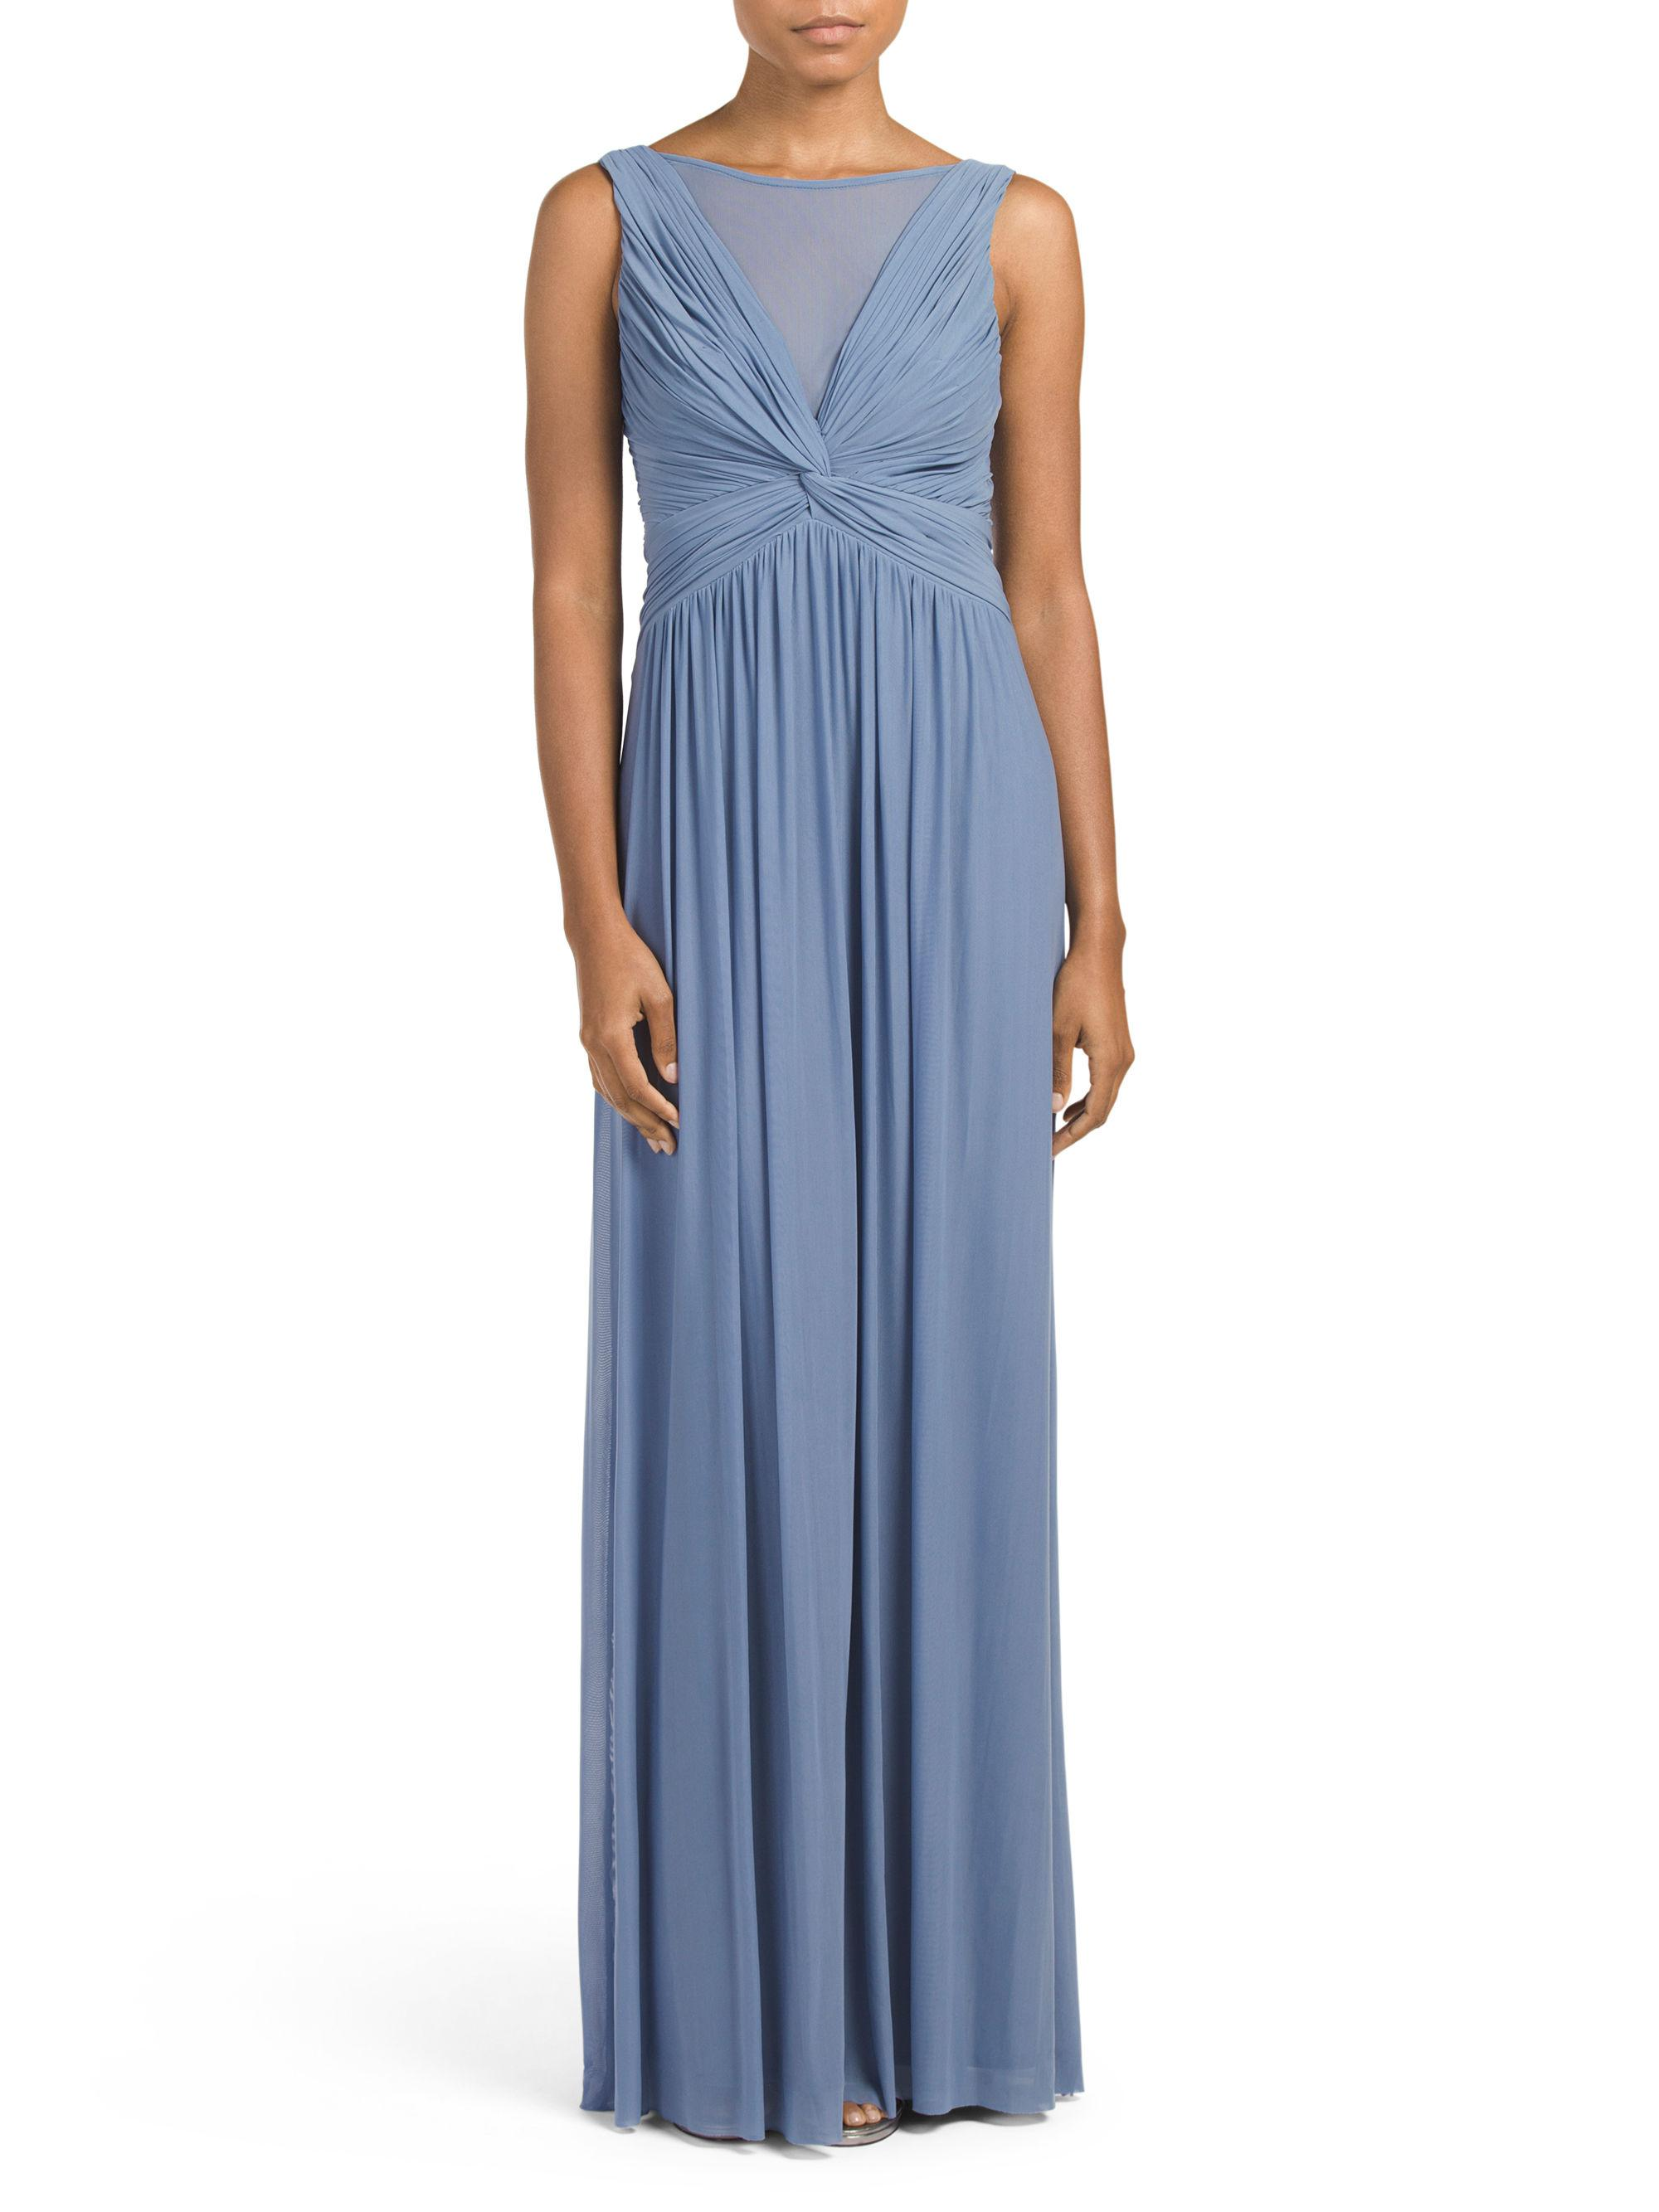 Luxury Tk Maxx Prom Dresses Collection - Womens Dresses & Gowns ...